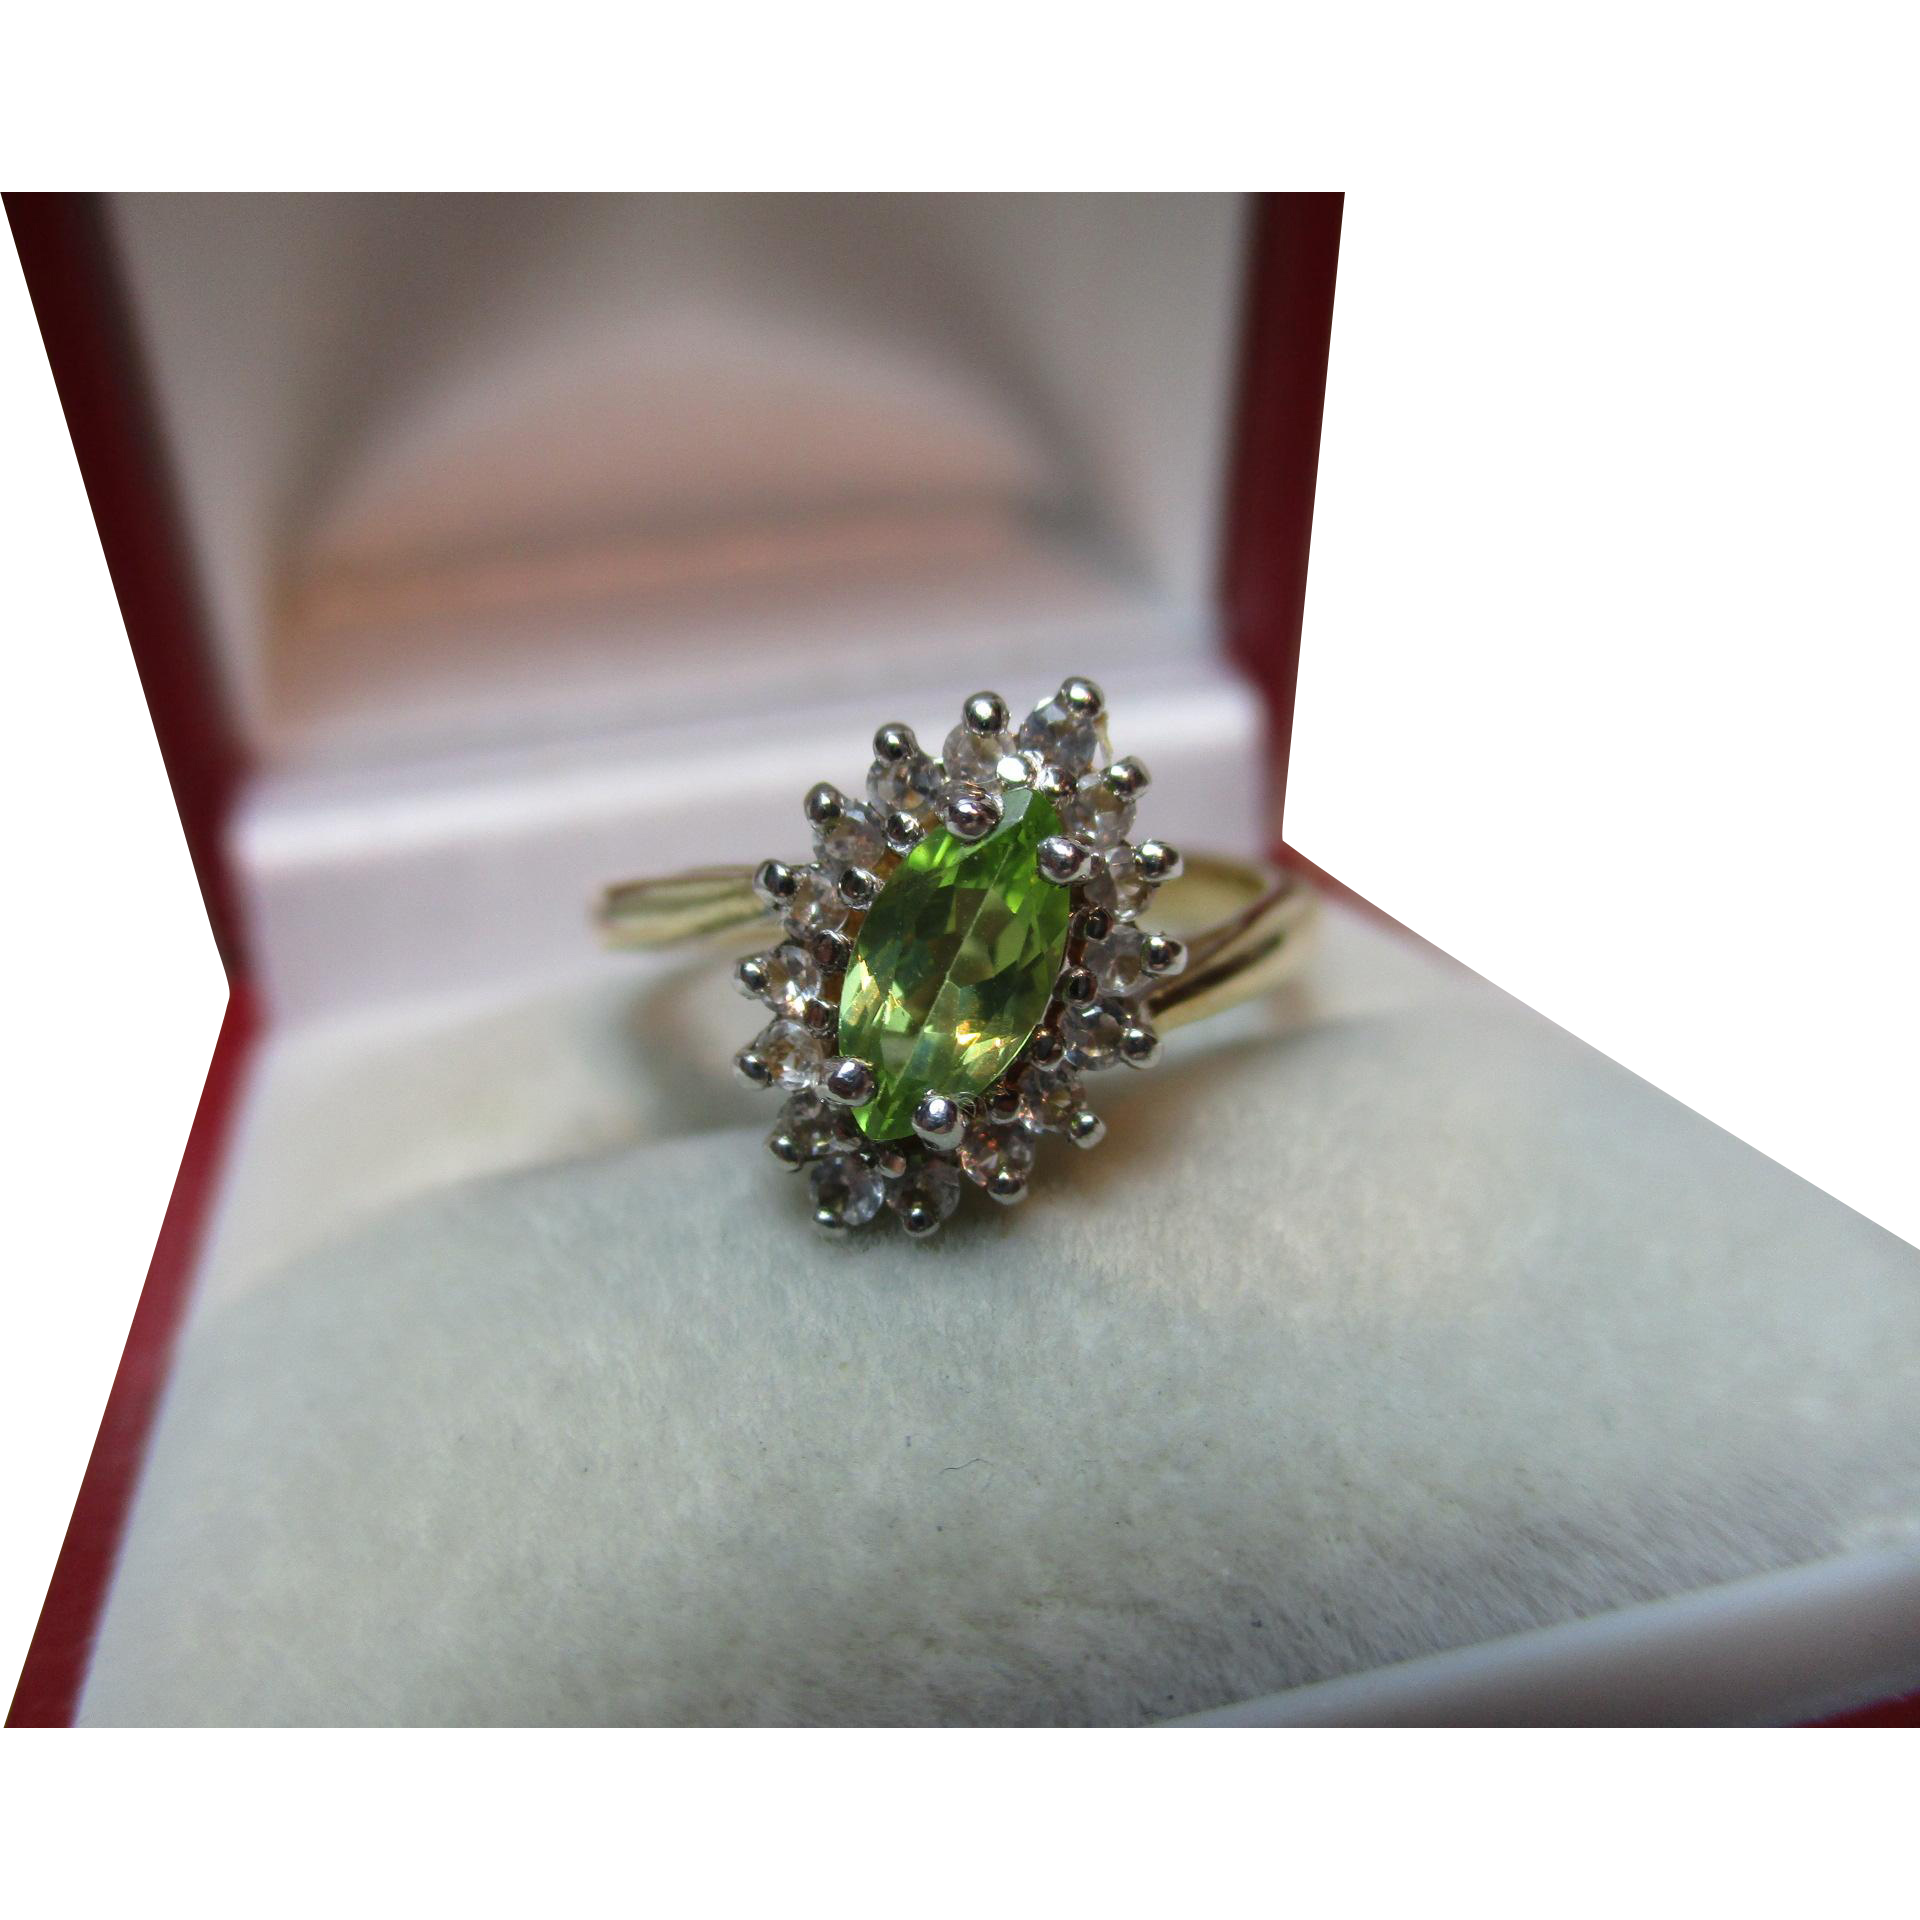 Lovely Vintage 9ct Solid Gold 'Marquise Shaped' Peridot + Cubic Zirconia Gemstone Ring